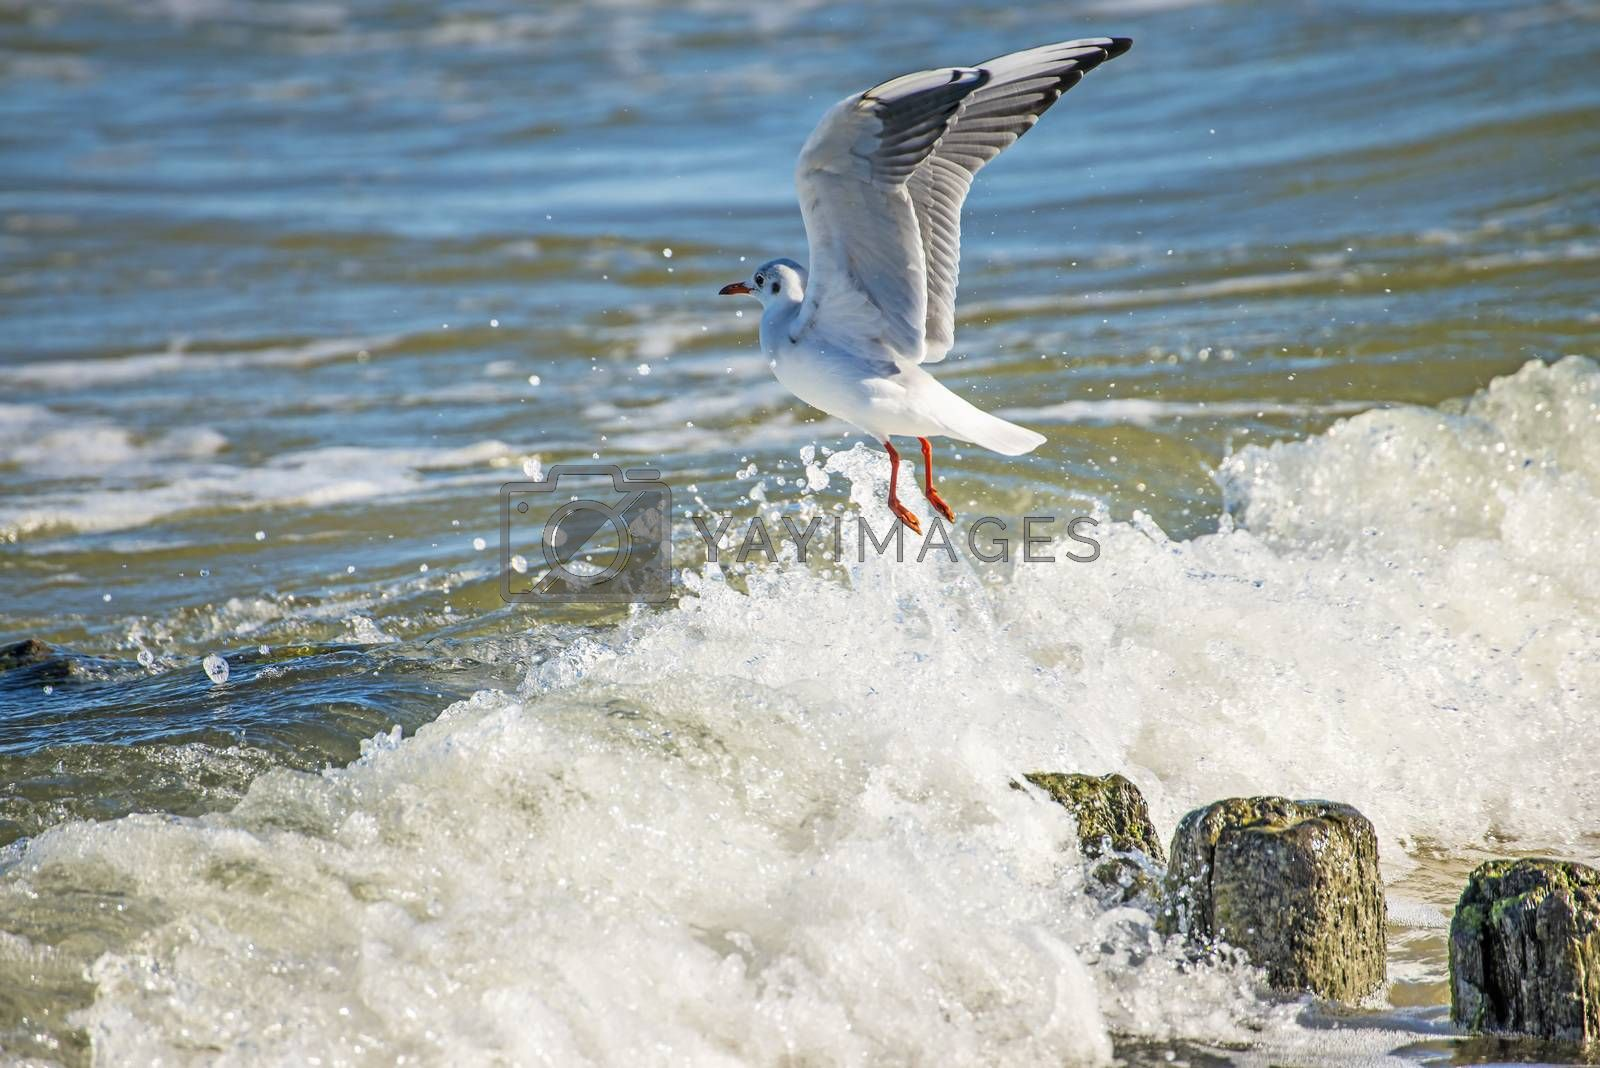 Black-headed gull over groynes in the Baltic Sea by bremse